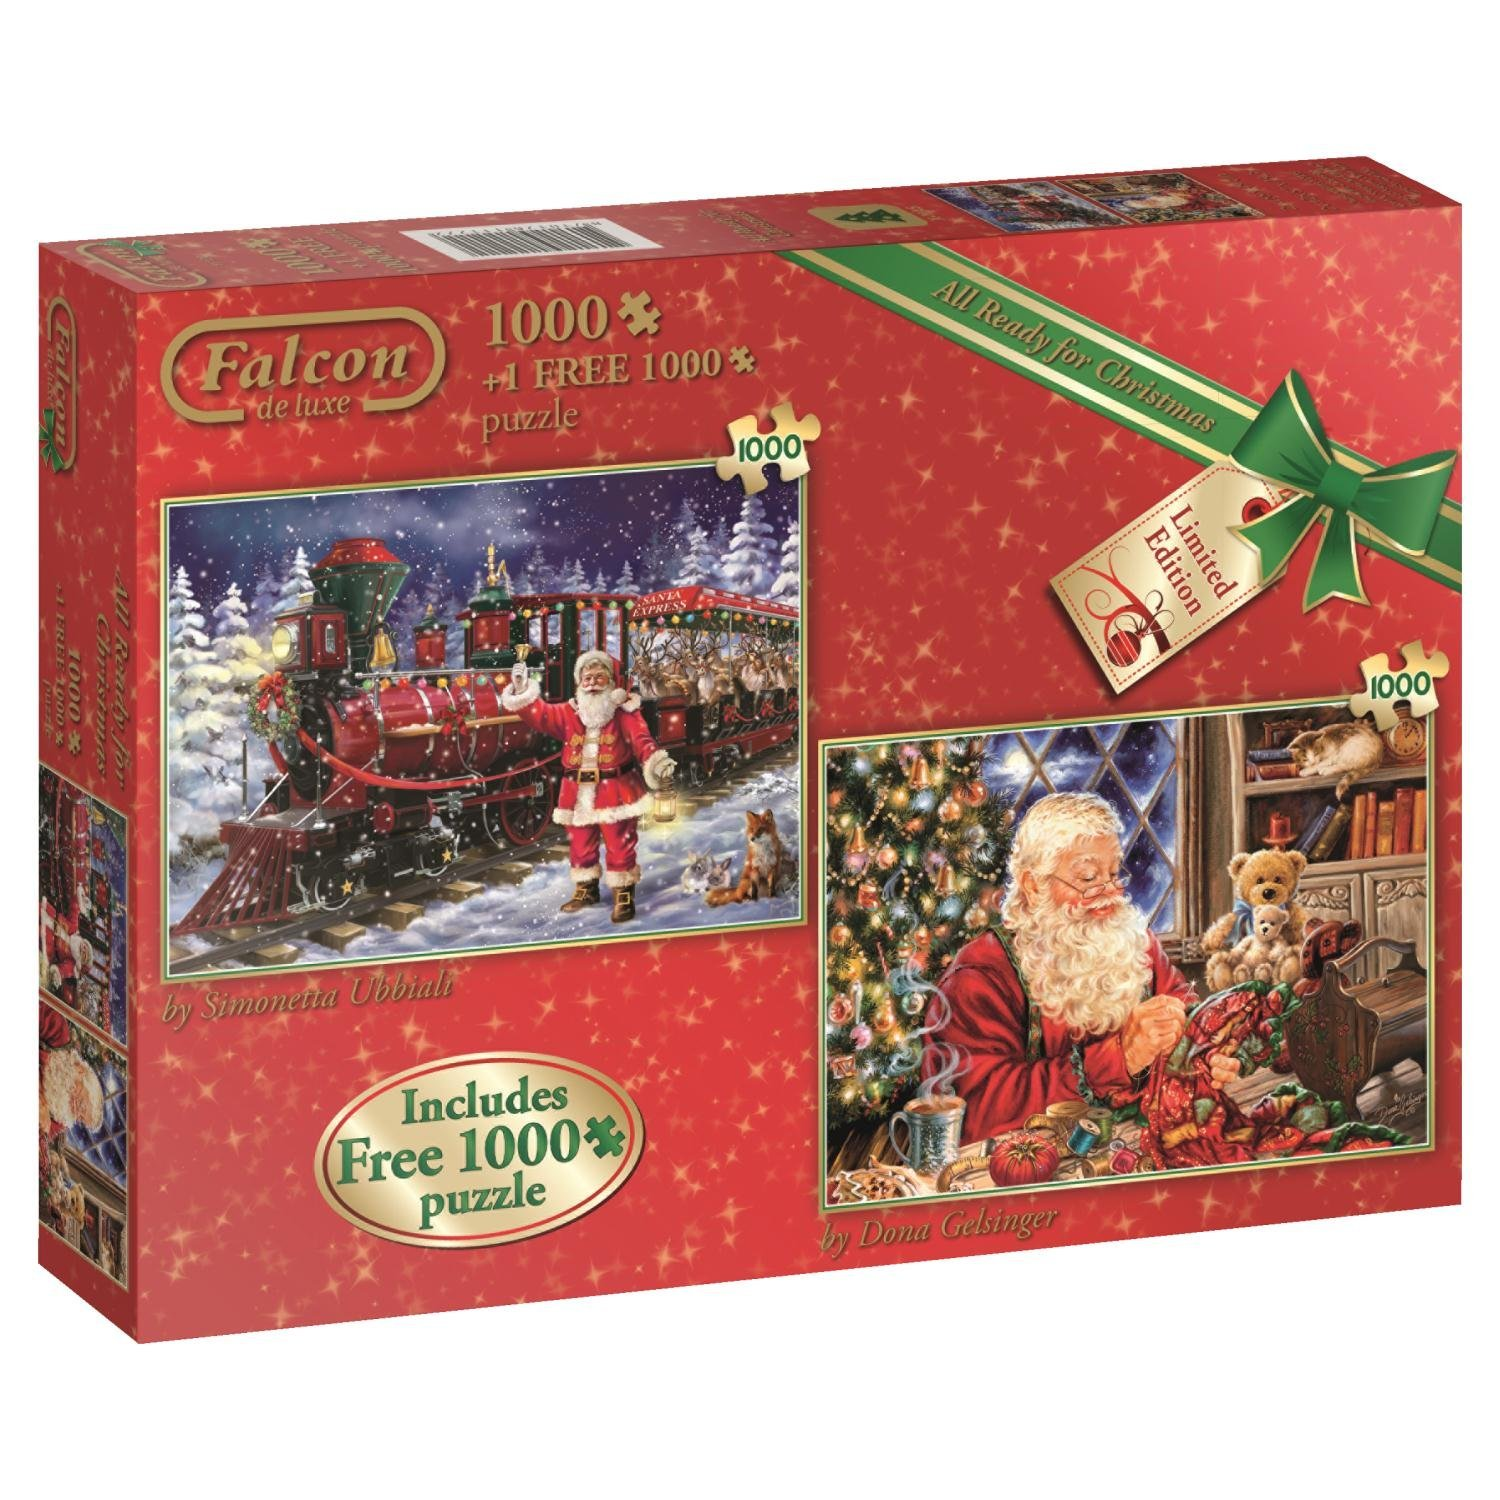 2 Puzzles - All Ready for Christmas